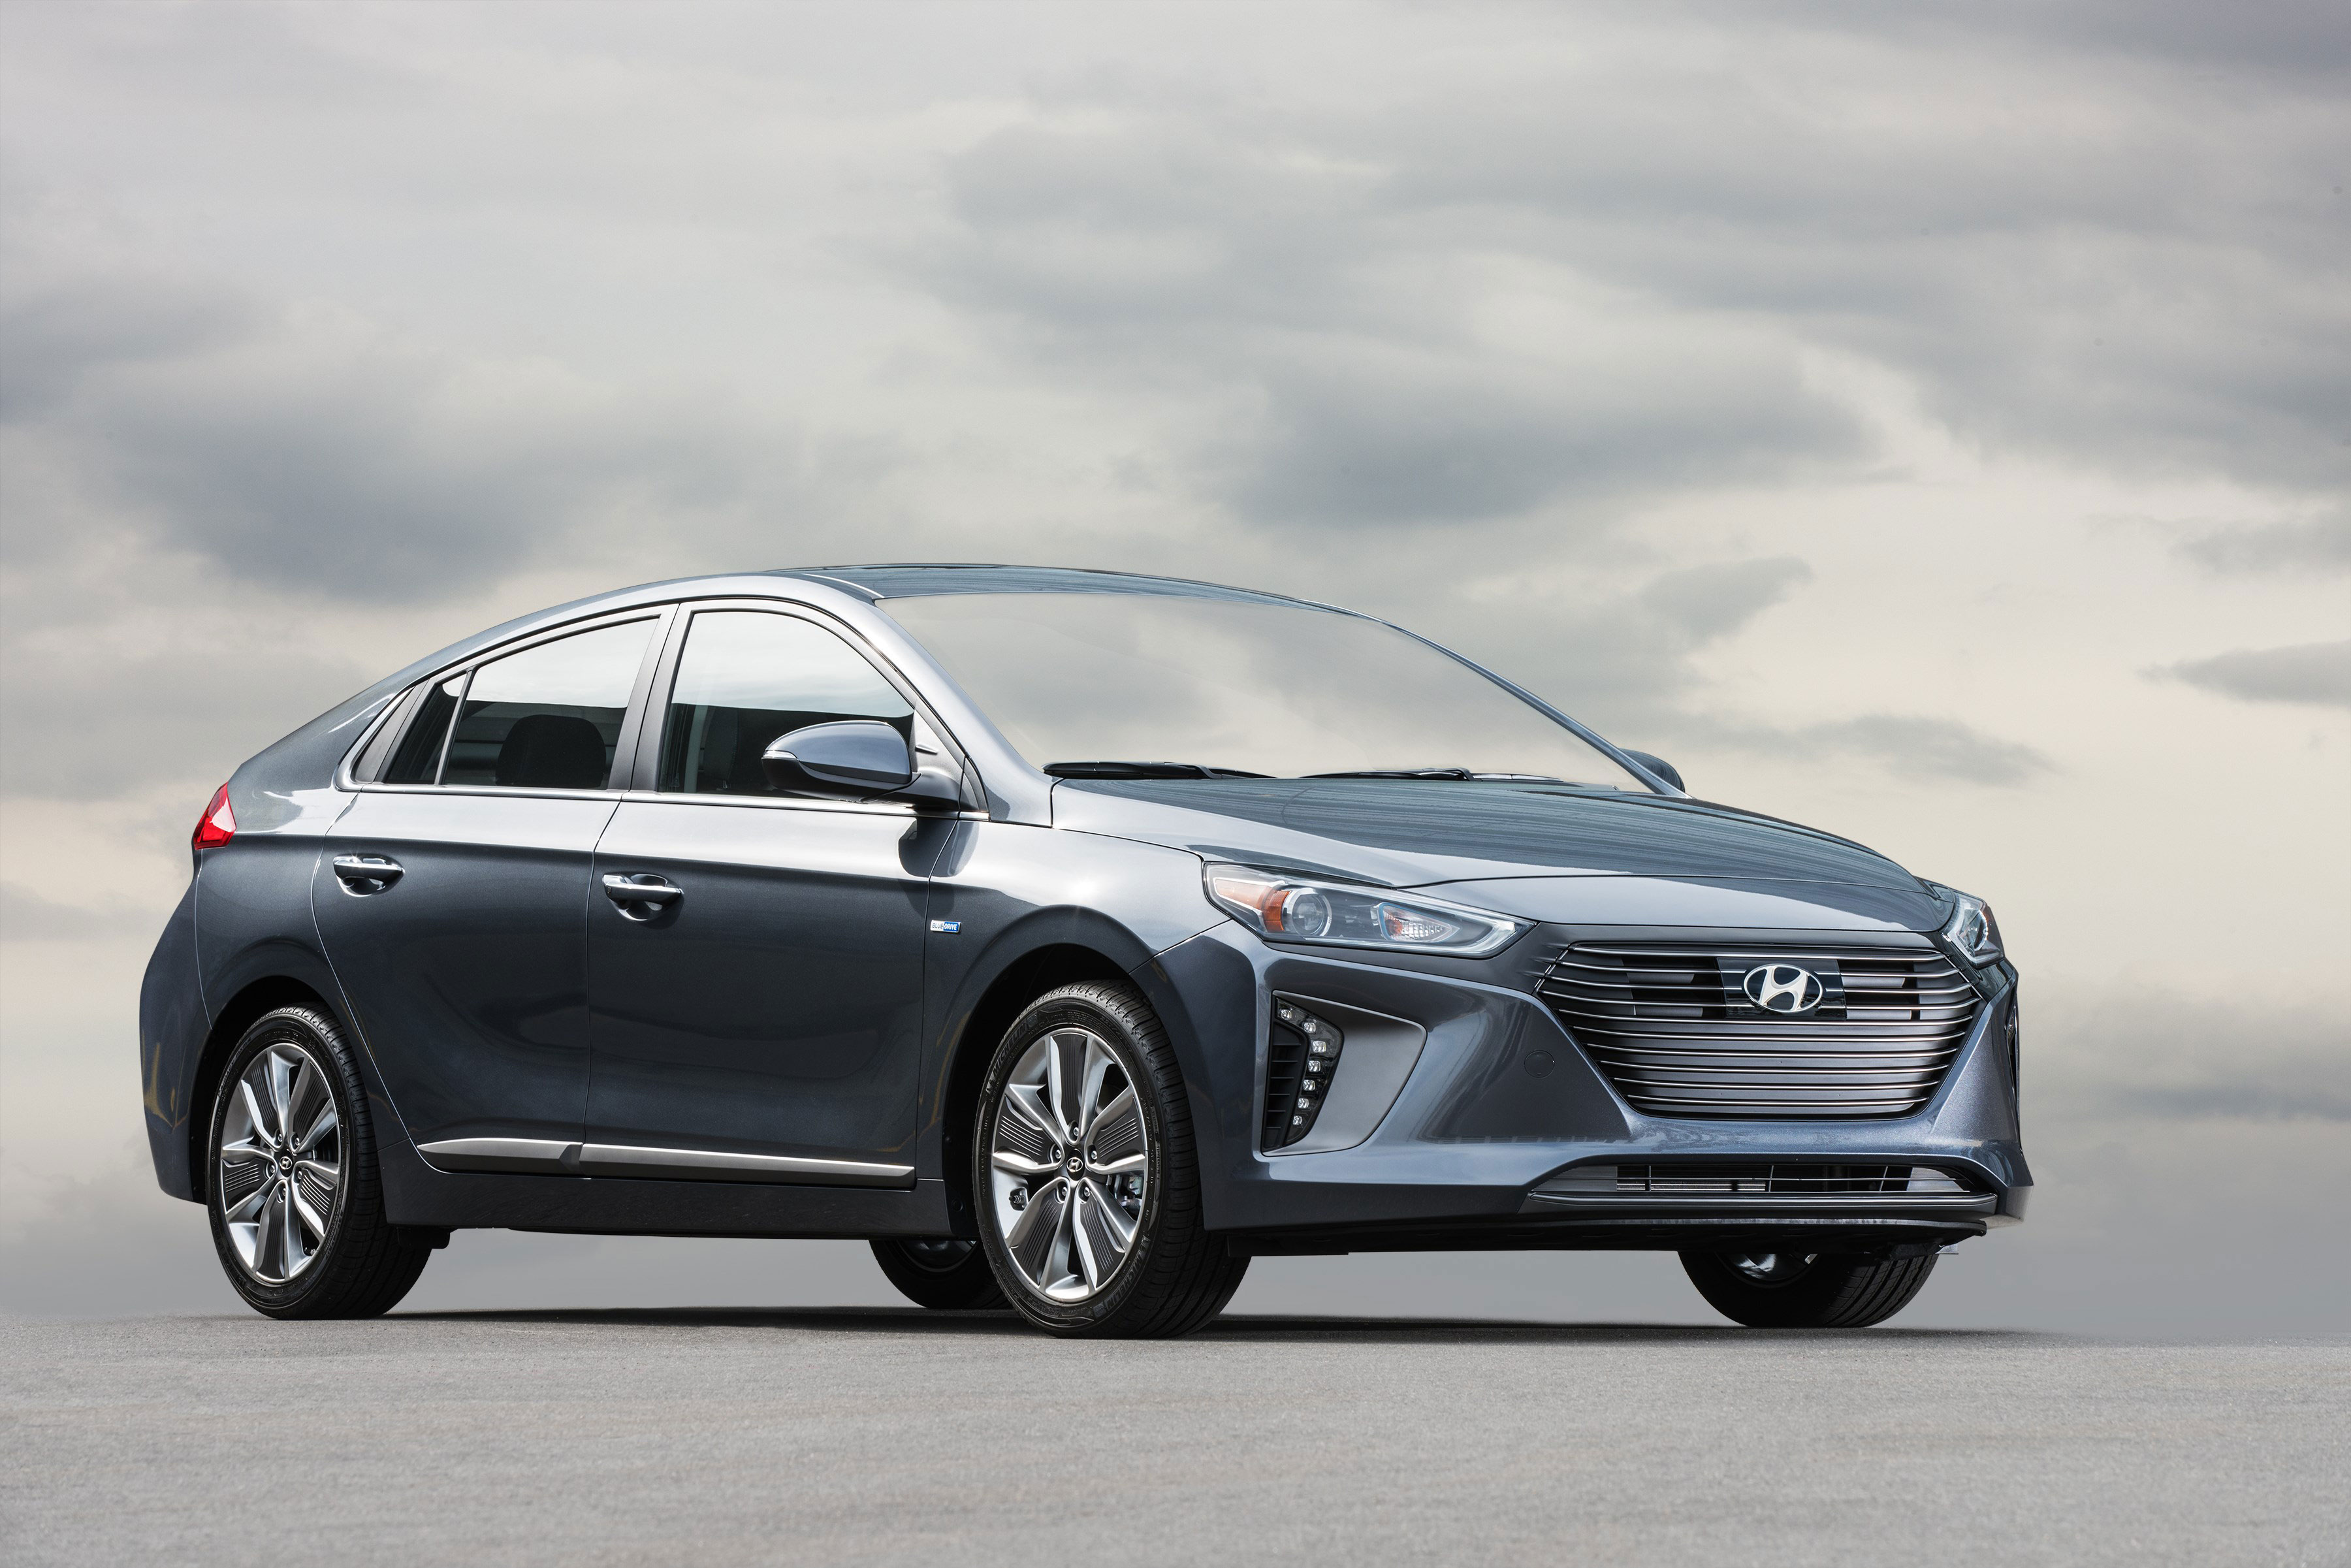 Hyundai Ioniq and Accent Awarded Editors' Choice Honors by Car and Driver